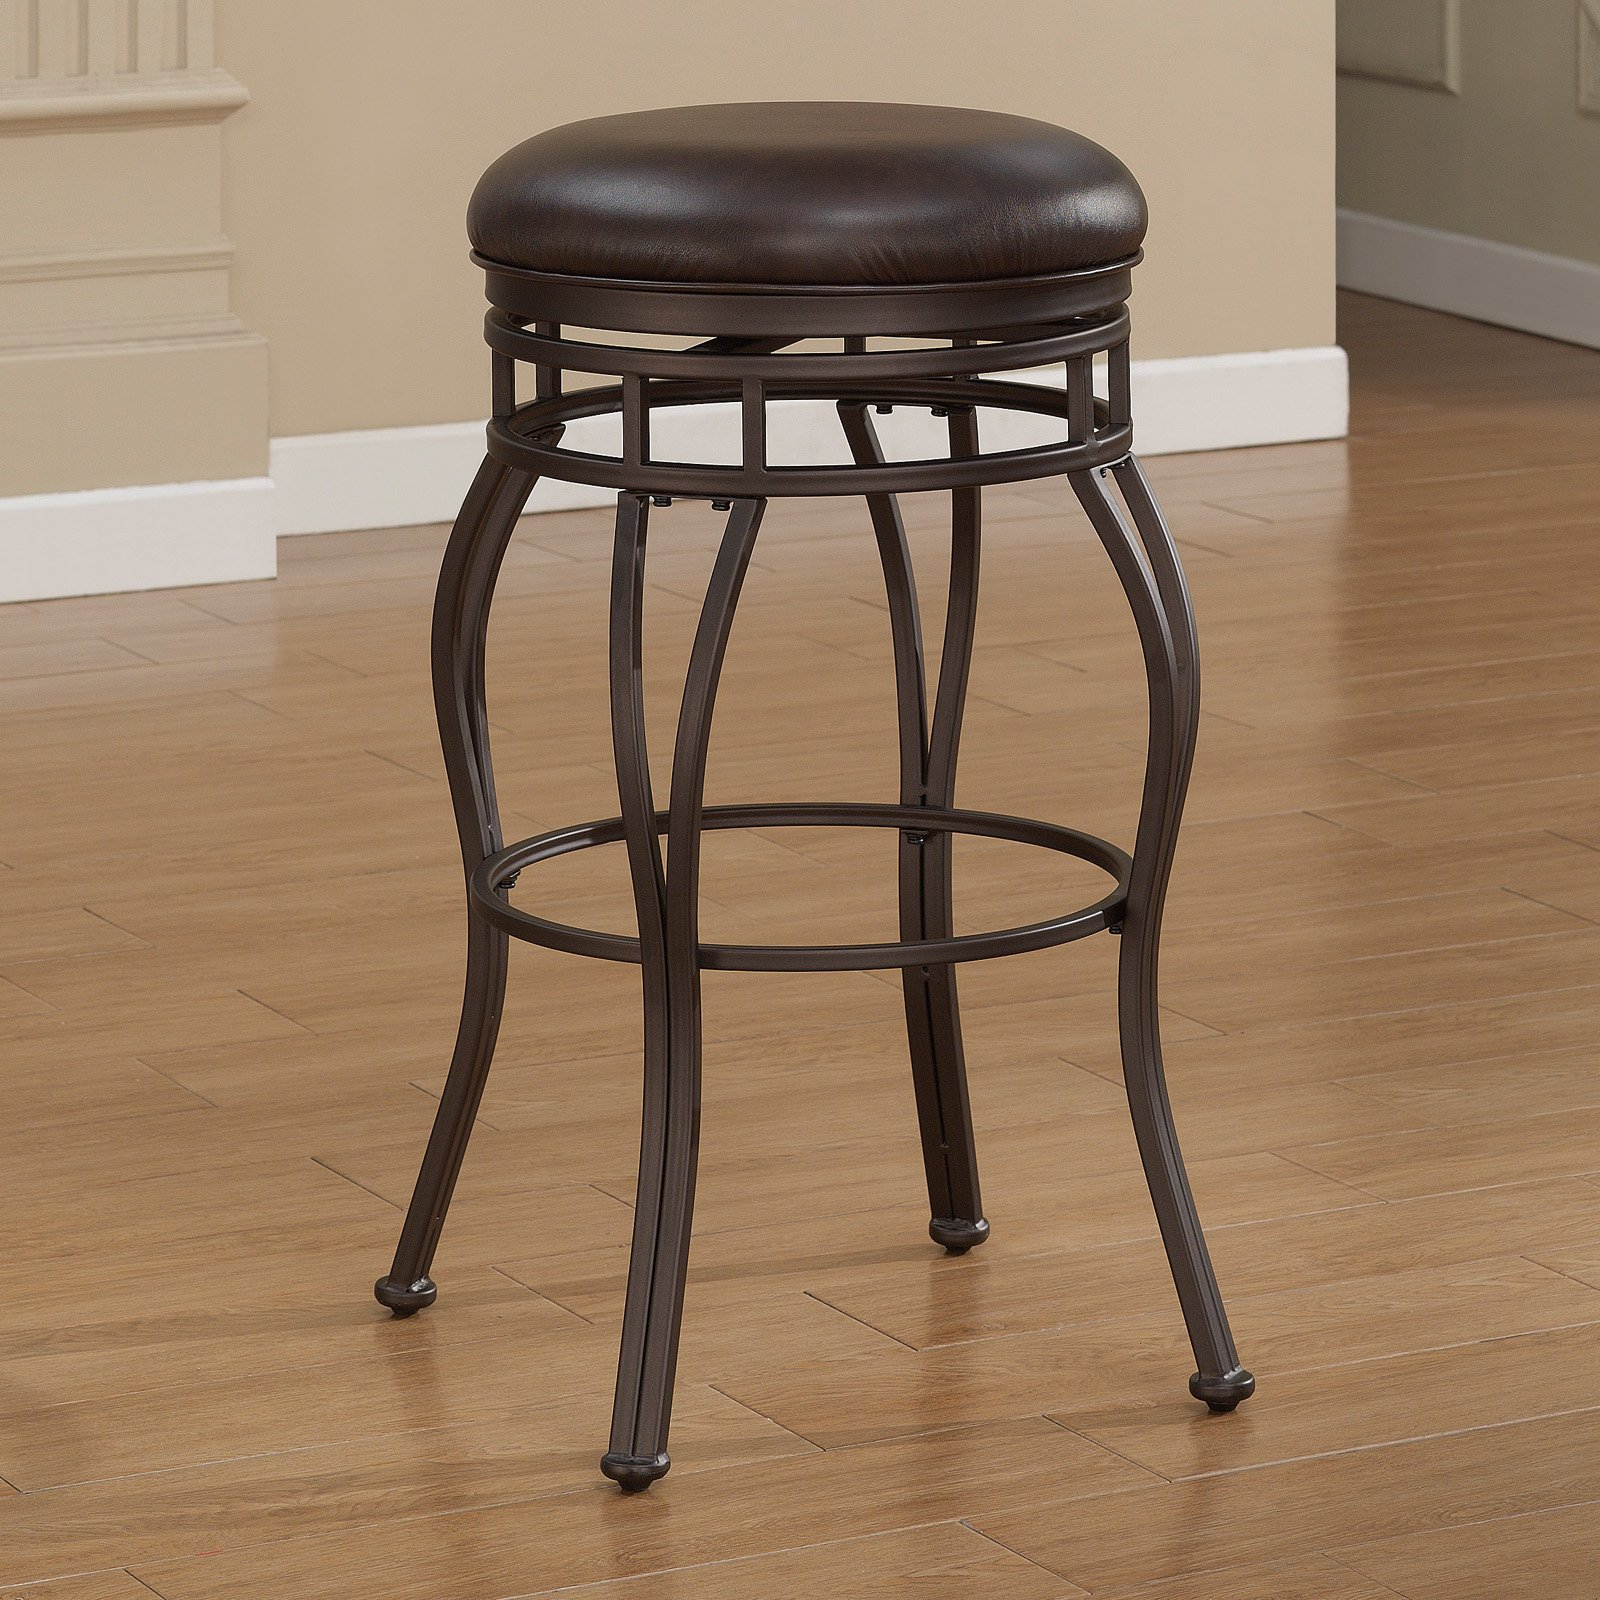 American Woodcrafters Villa Backless Counter Stool - Taupe Gray